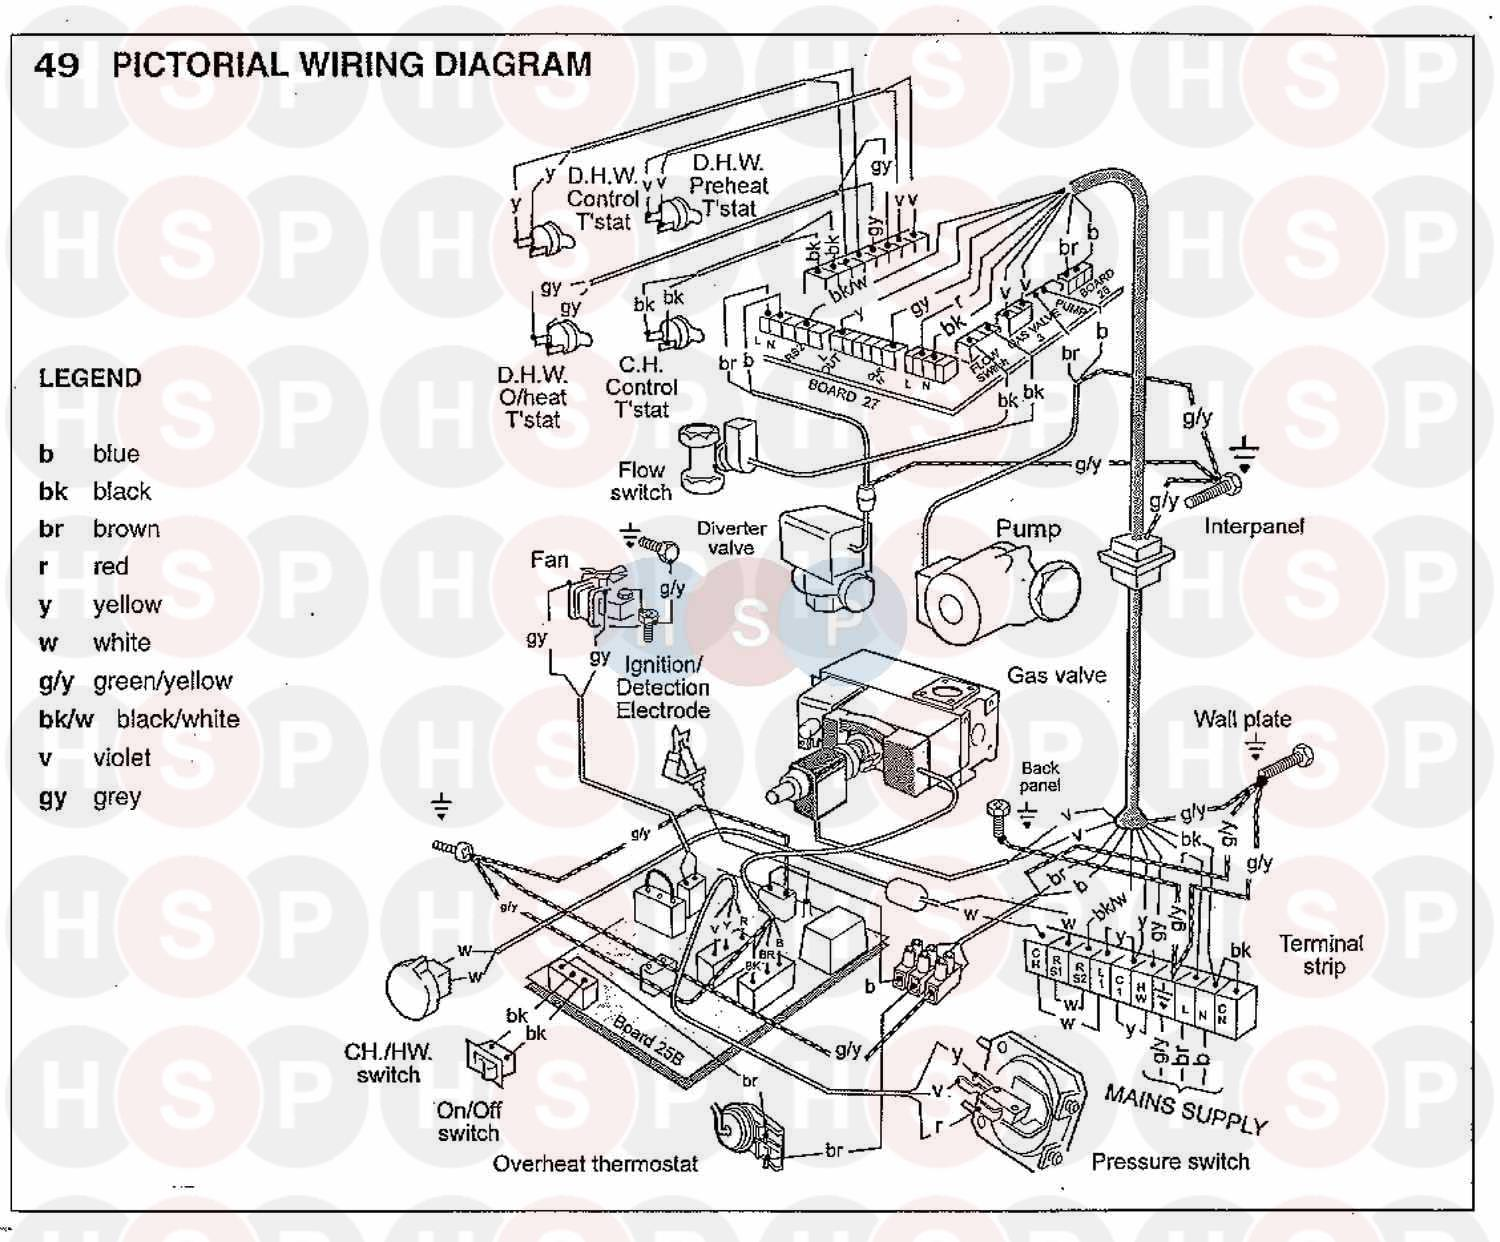 Honeywell 4 Wire Zone Valve Wiring Diagram additionally Honeywell Motorized Valve Wiring Diagram further Caleffi Zone Valve Wiring Diagram likewise V8043e1012 Honeywell Zone Valve Wiring Diagram together with Arc Wiring Diagram. on honeywell v8043e zone valve wiring